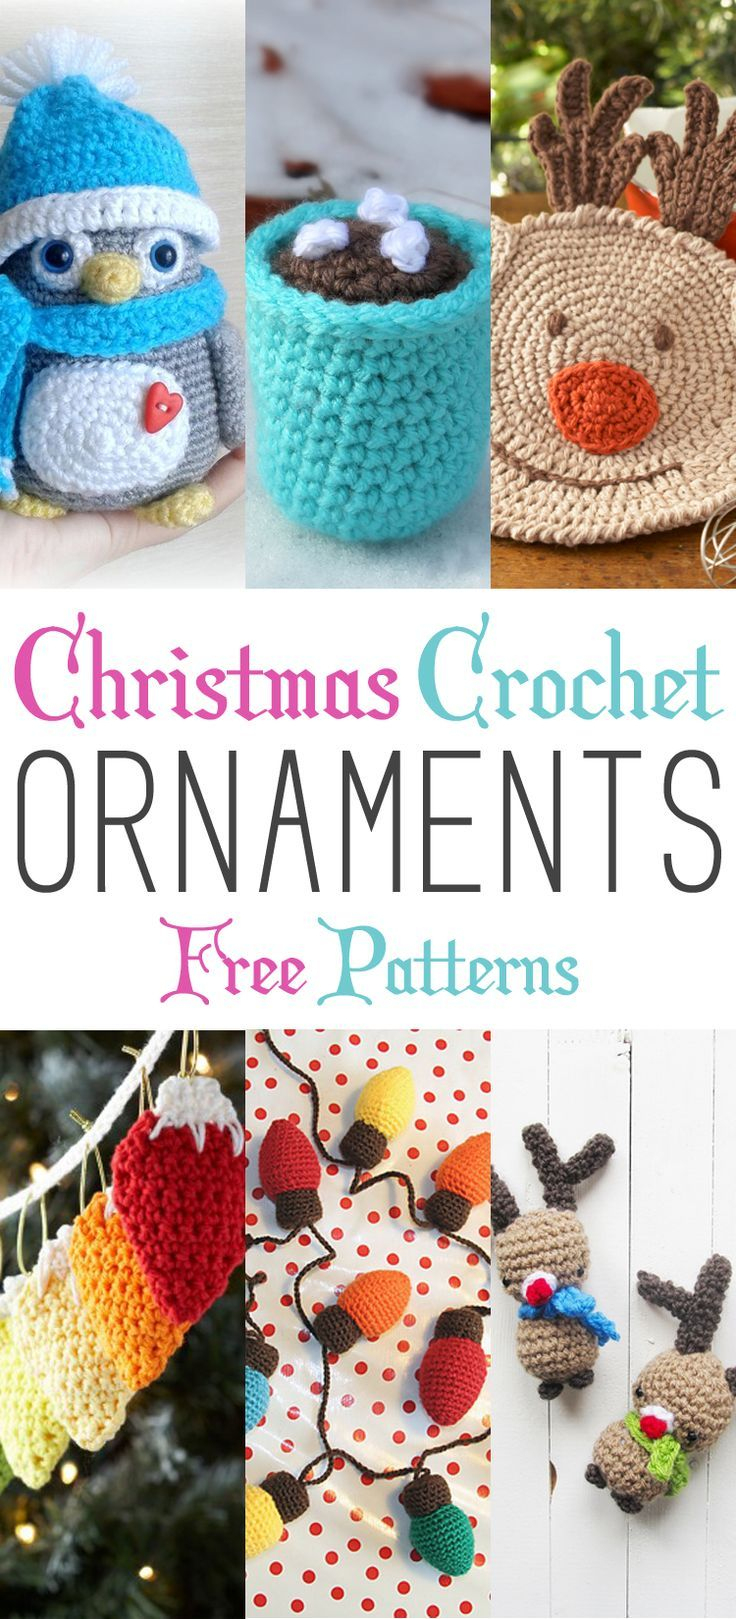 Christmas Crochet Ornaments With Free Patterns - Free Printable Christmas Crochet Patterns